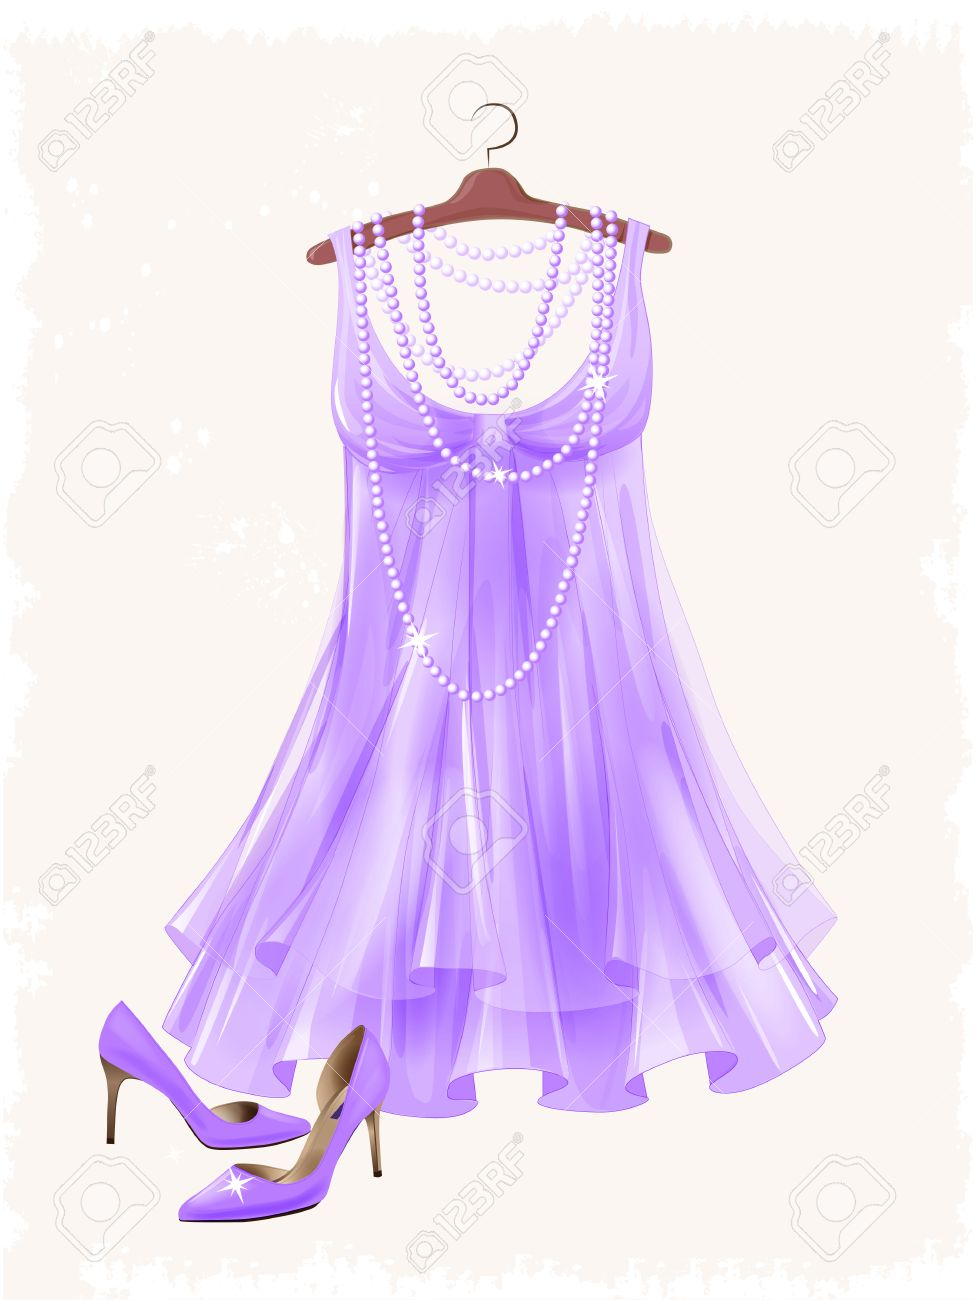 wholesale dealer clearance prices new photos Vintage lilac silk dress and high-heeled shoes. Dress and shoes..